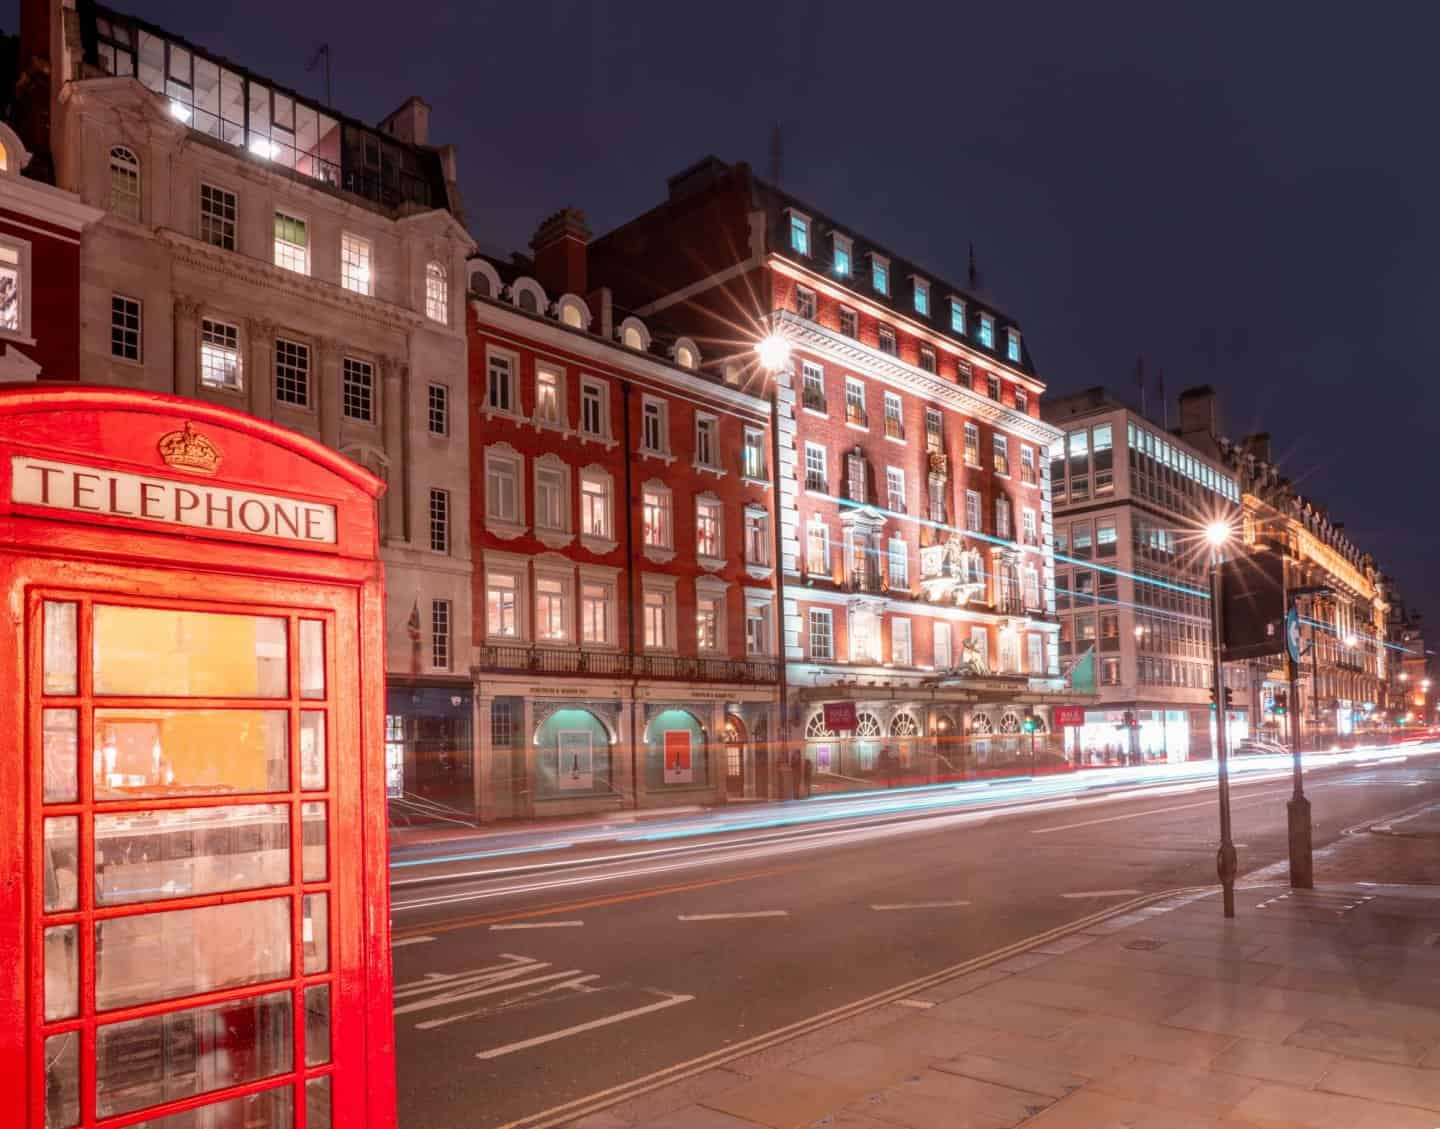 Fortnum and Mason at night, behind a red London phone box, on Piccadilly Street, one of the most famous streets in London